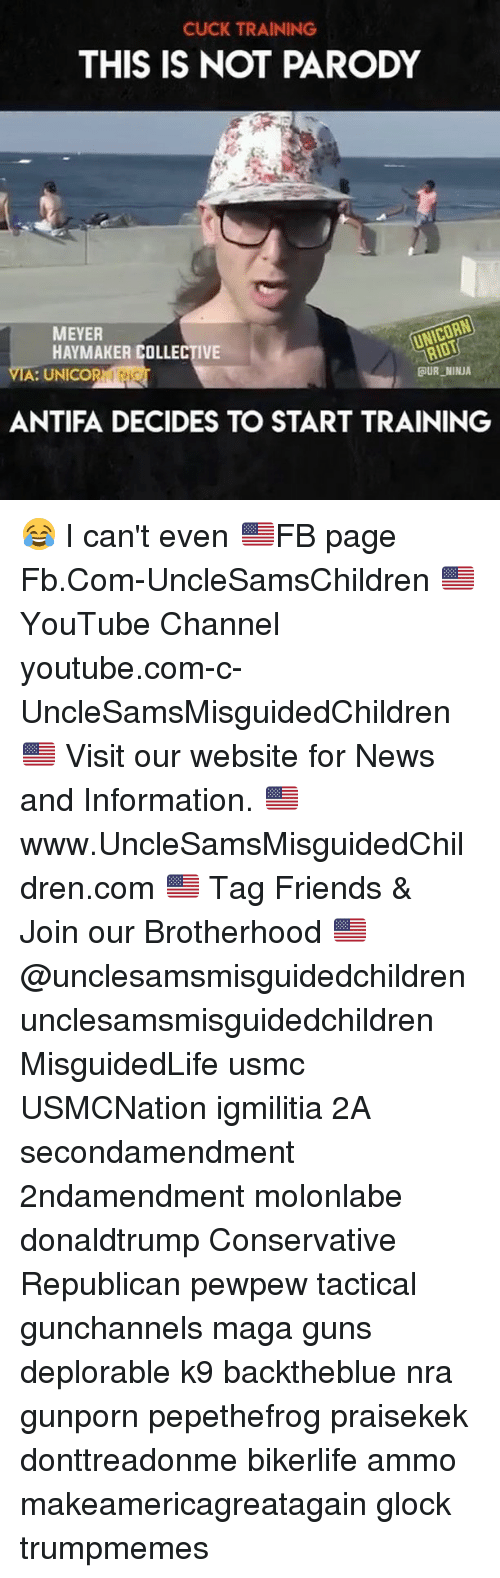 Friends, Guns, and Memes: CUCK TRAINING  THIS IS NOT PARODY  MEYER  HAYMAKER COLLECTIVE  UNICORN  A: UNICO  UR NINJA  ANTIFA DECIDES TO START TRAINING 😂 I can't even 🇺🇸FB page Fb.Com-UncleSamsChildren 🇺🇸YouTube Channel youtube.com-c-UncleSamsMisguidedChildren 🇺🇸 Visit our website for News and Information. 🇺🇸 www.UncleSamsMisguidedChildren.com 🇺🇸 Tag Friends & Join our Brotherhood 🇺🇸 @unclesamsmisguidedchildren unclesamsmisguidedchildren MisguidedLife usmc USMCNation igmilitia 2A secondamendment 2ndamendment molonlabe donaldtrump Conservative Republican pewpew tactical gunchannels maga guns deplorable k9 backtheblue nra gunporn pepethefrog praisekek donttreadonme bikerlife ammo makeamericagreatagain glock trumpmemes